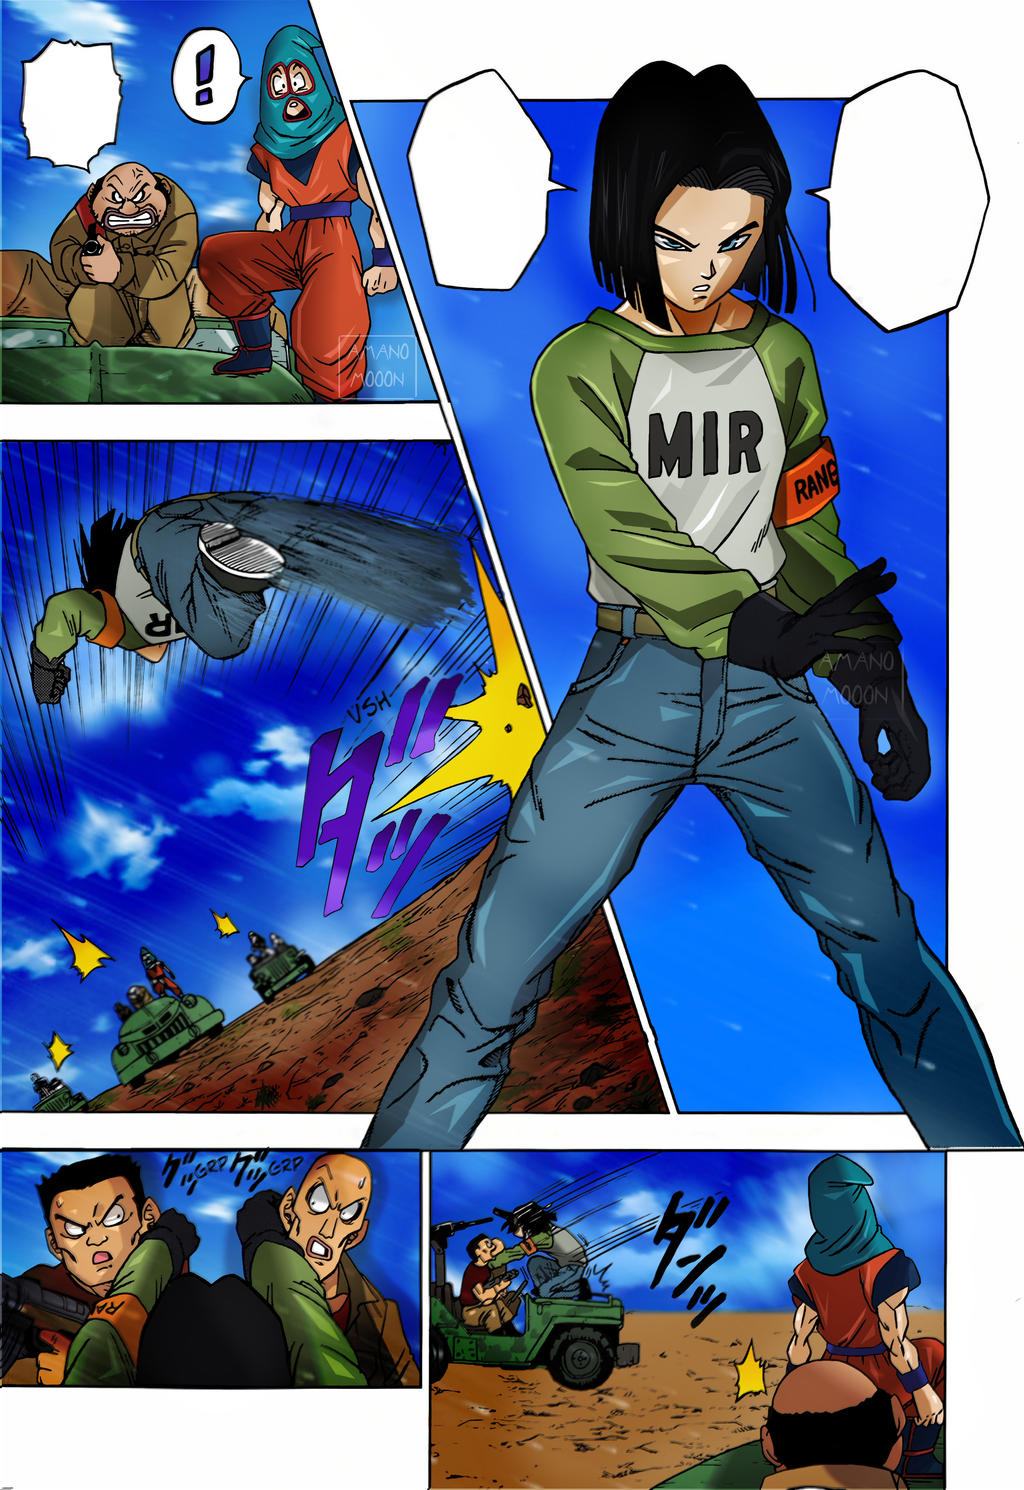 Dragon Ball Super Goku and C18 Chapter 31 Colors by Amanomoon on